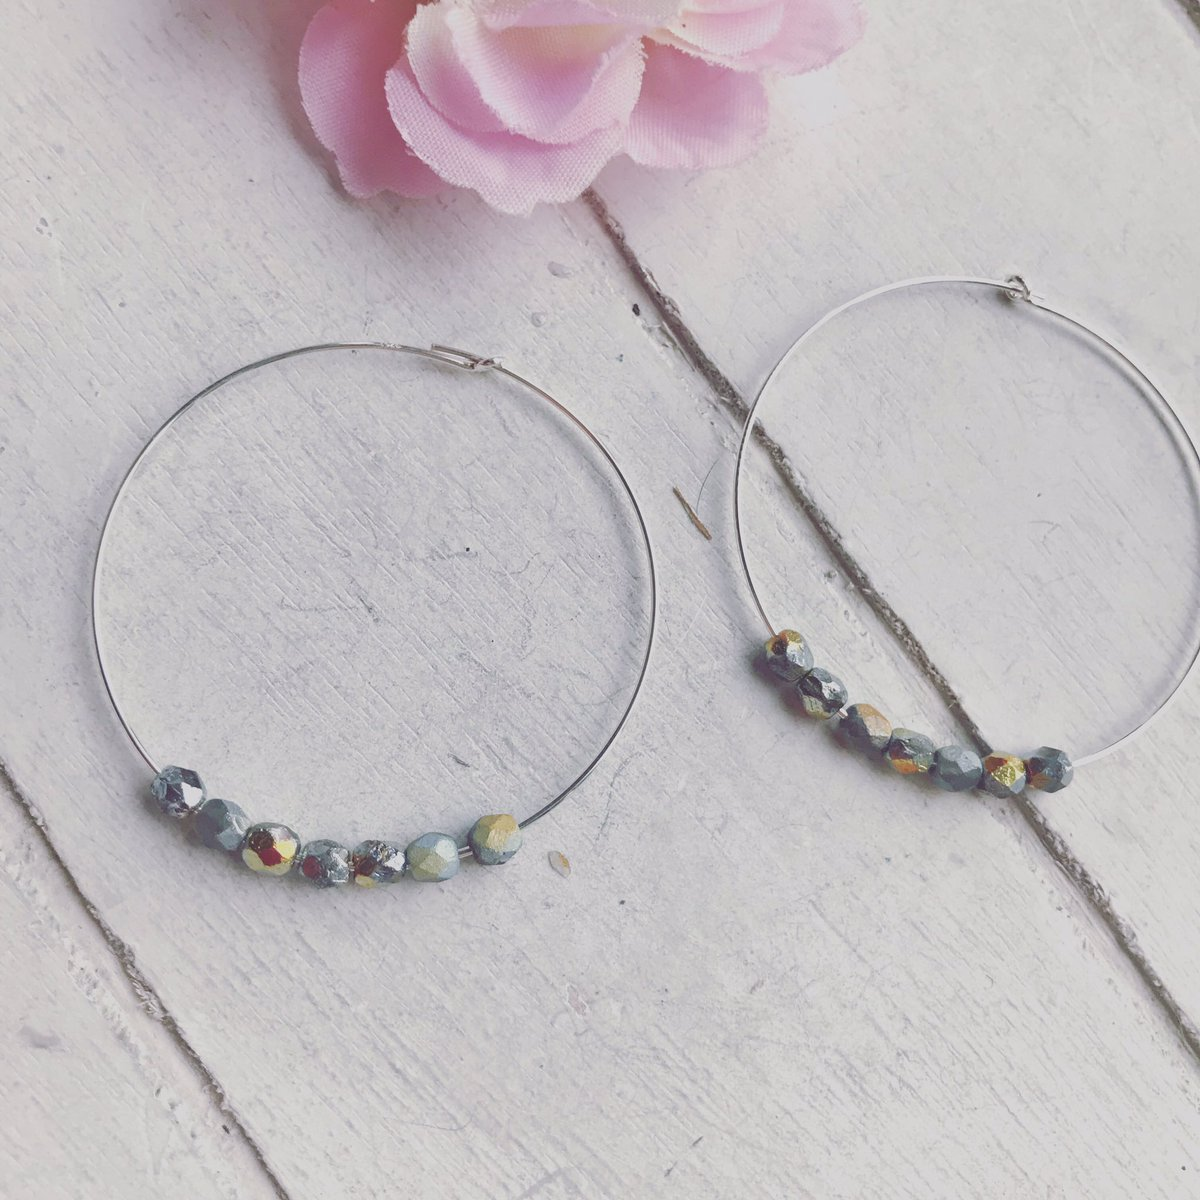 My Large 45mm Beaded Sterling Silver Hoops are very lightweight and easy to wear  https:// etsy.me/2X5mYZm  &nbsp;   very versatile to suit many outfits and great for day or evening wear #Elevenseshour #atsocialmedia #artisanuk #HandmadeHour £9.50 with waived postage #etsyjewelry <br>http://pic.twitter.com/4m6C8aZHAO